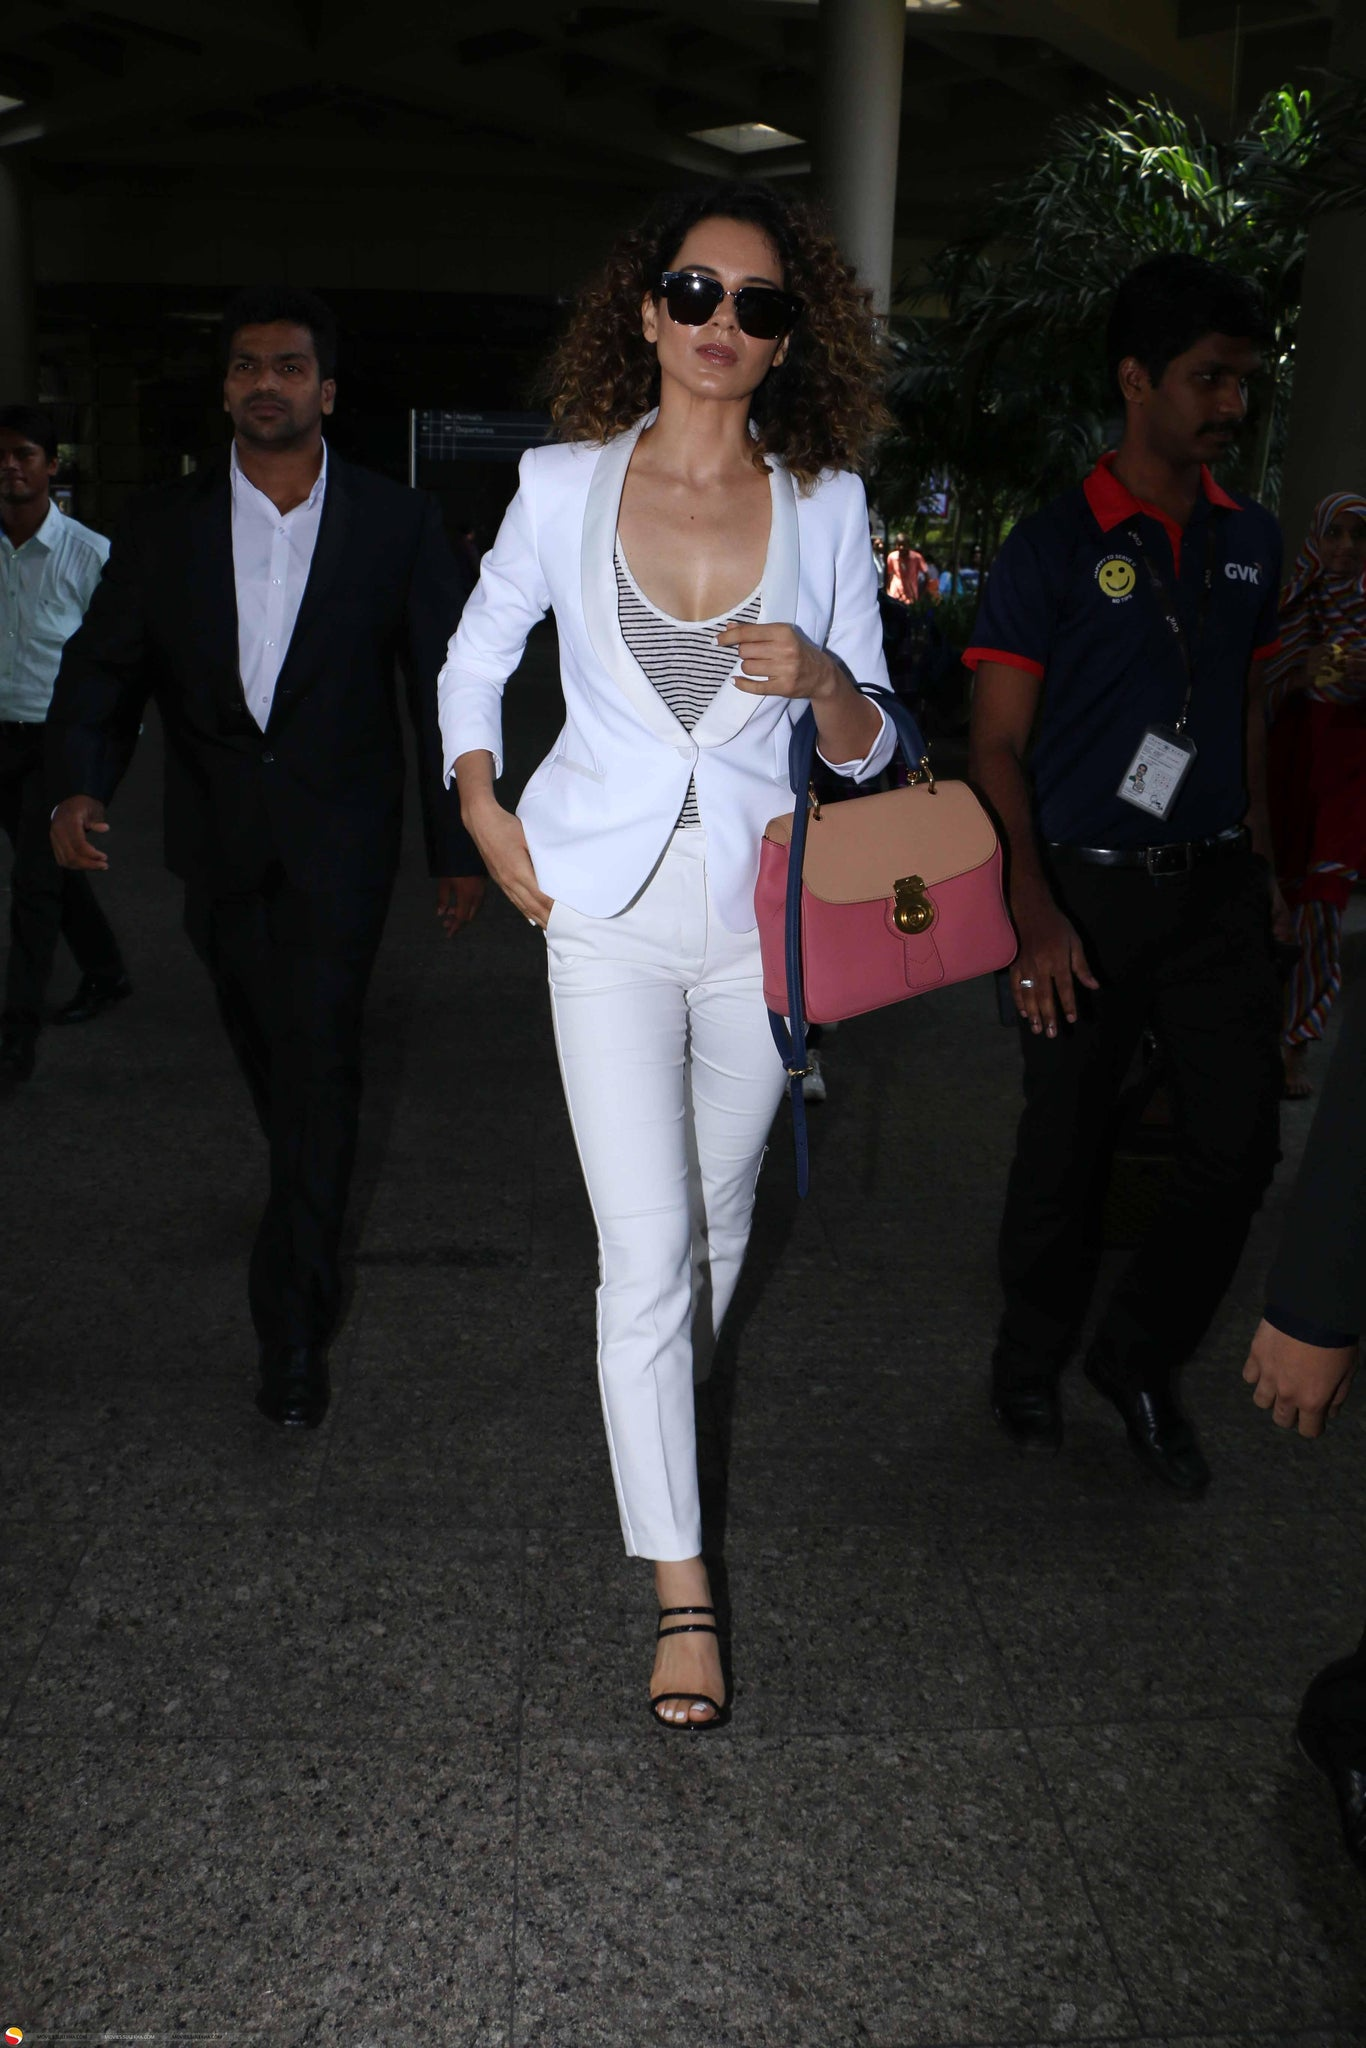 Kangana Ranaut Looks Like a Boss in Zara White Pantsuit